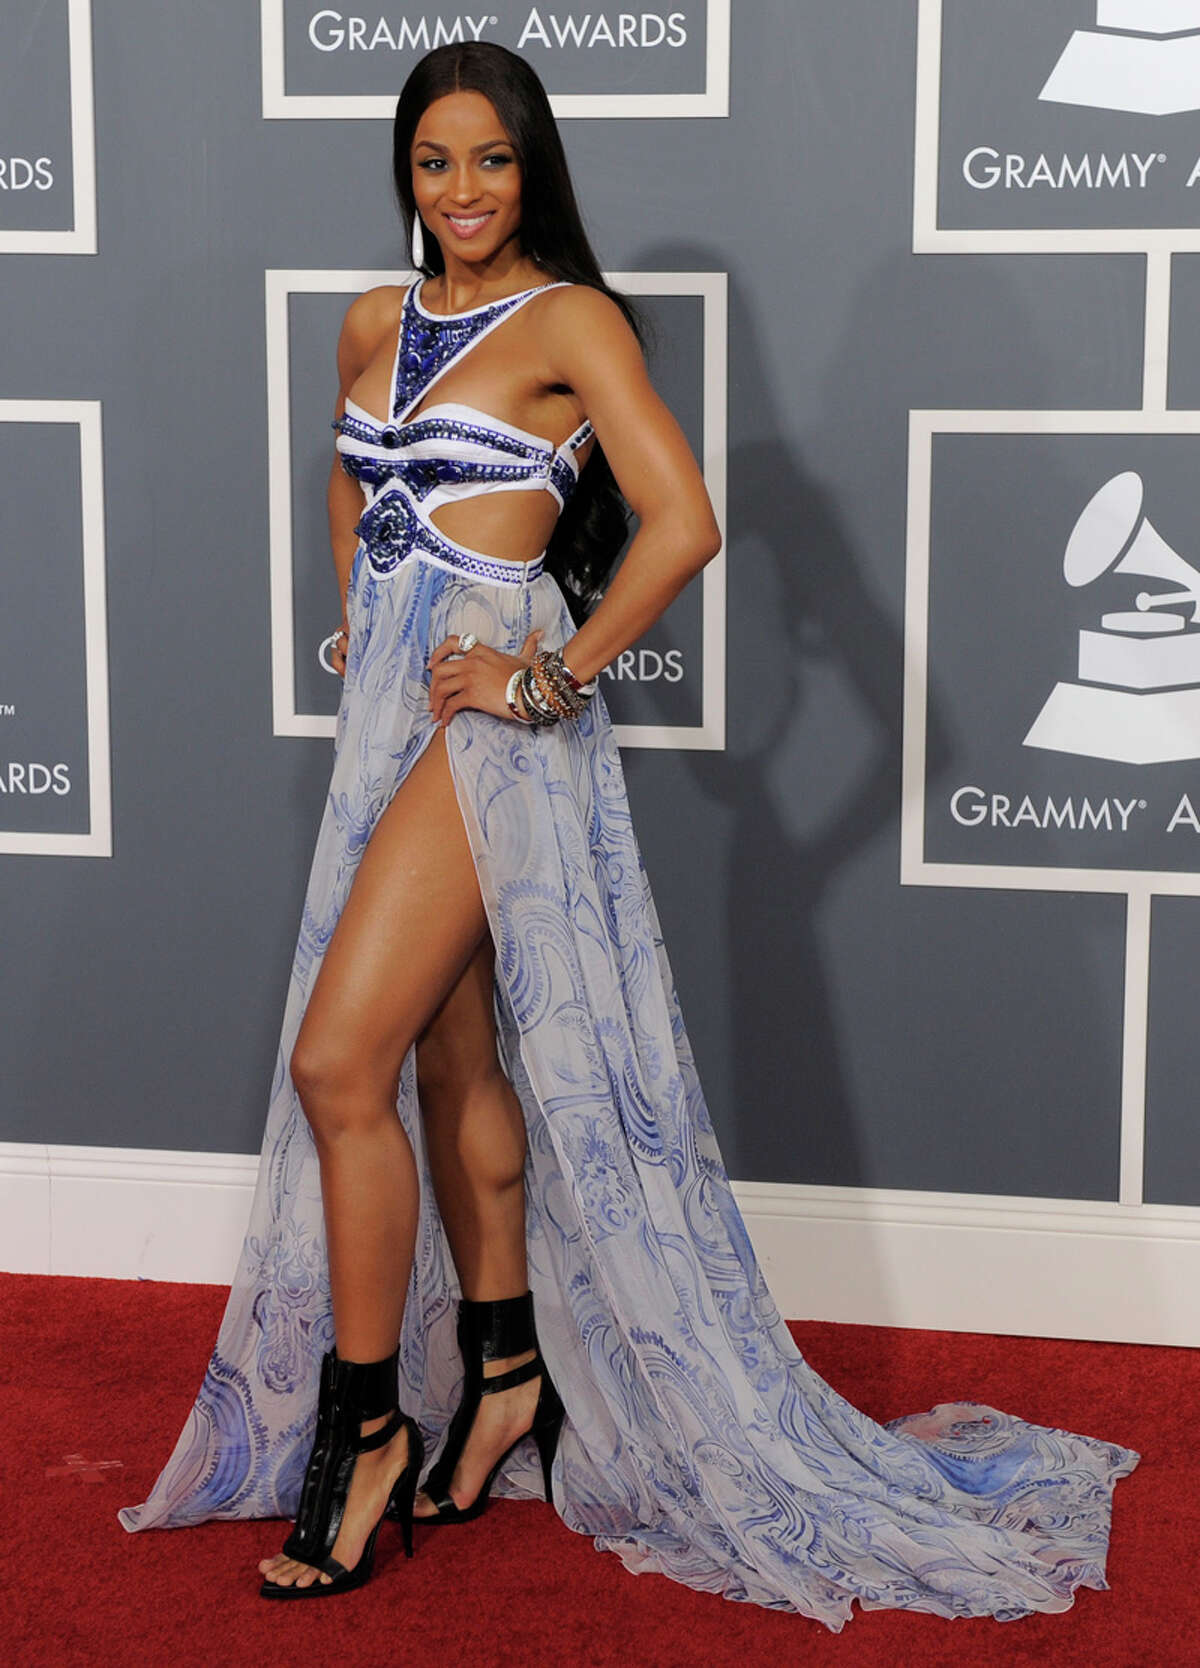 Blue hues: Ciara's Emilio Pucci gown was a puzzle of a dress with multiple body baring cutouts and slits. WORDS BY MICHAEL QUINTANILLA / EXPRESS-NEWS; PHOTO BY ASSOCIATED PRESS